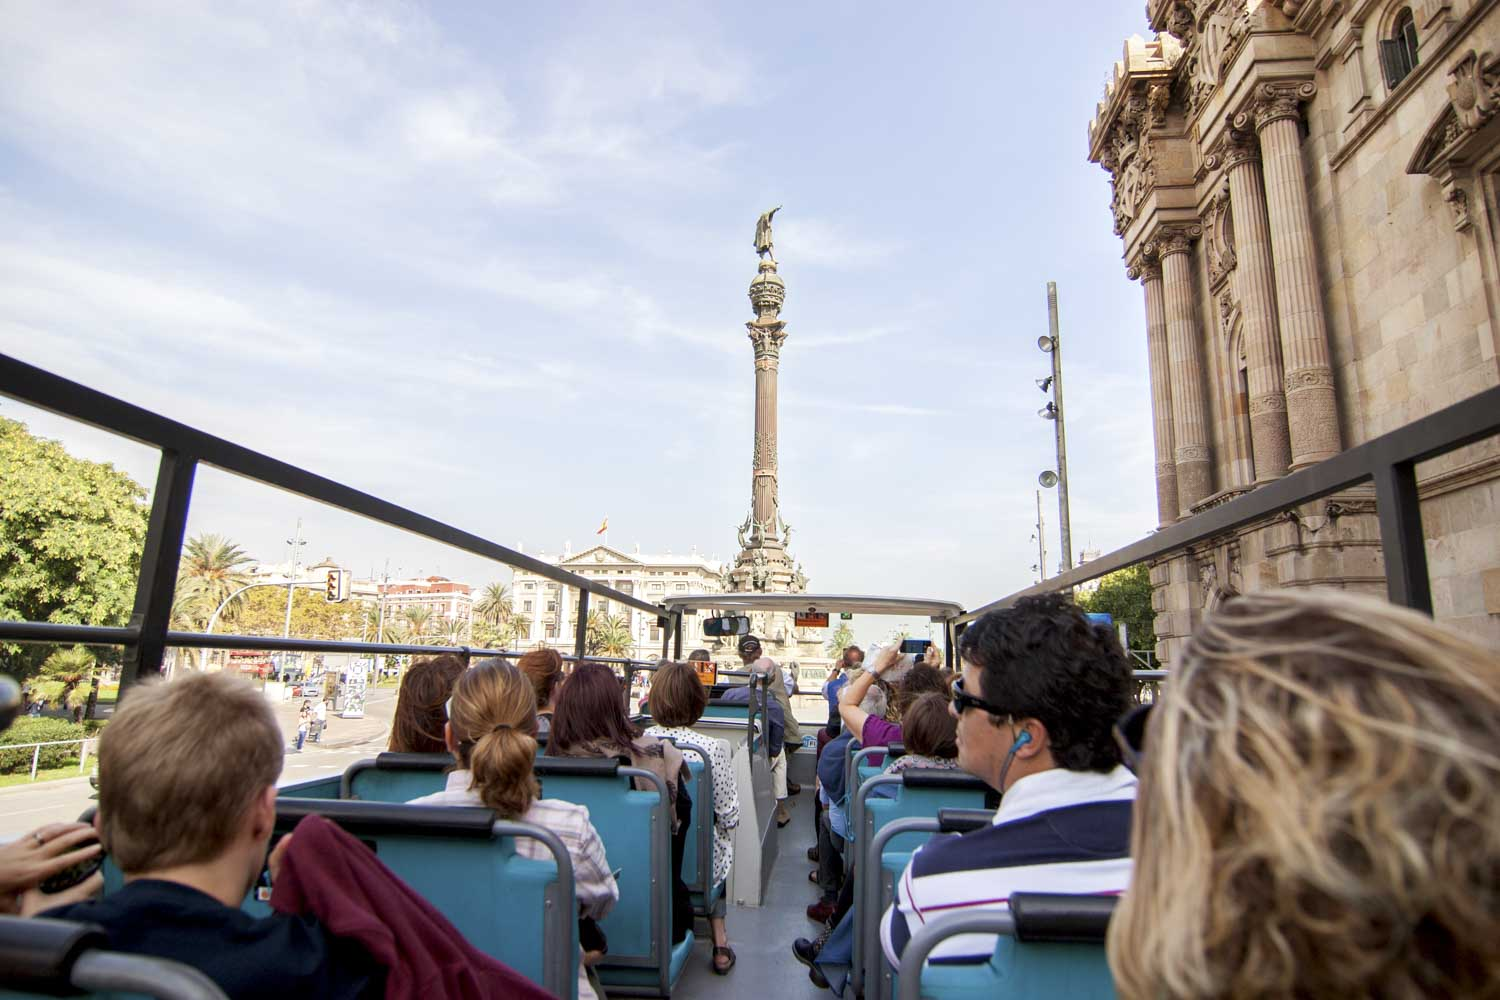 See all the sights in Barcelona at your own pace.